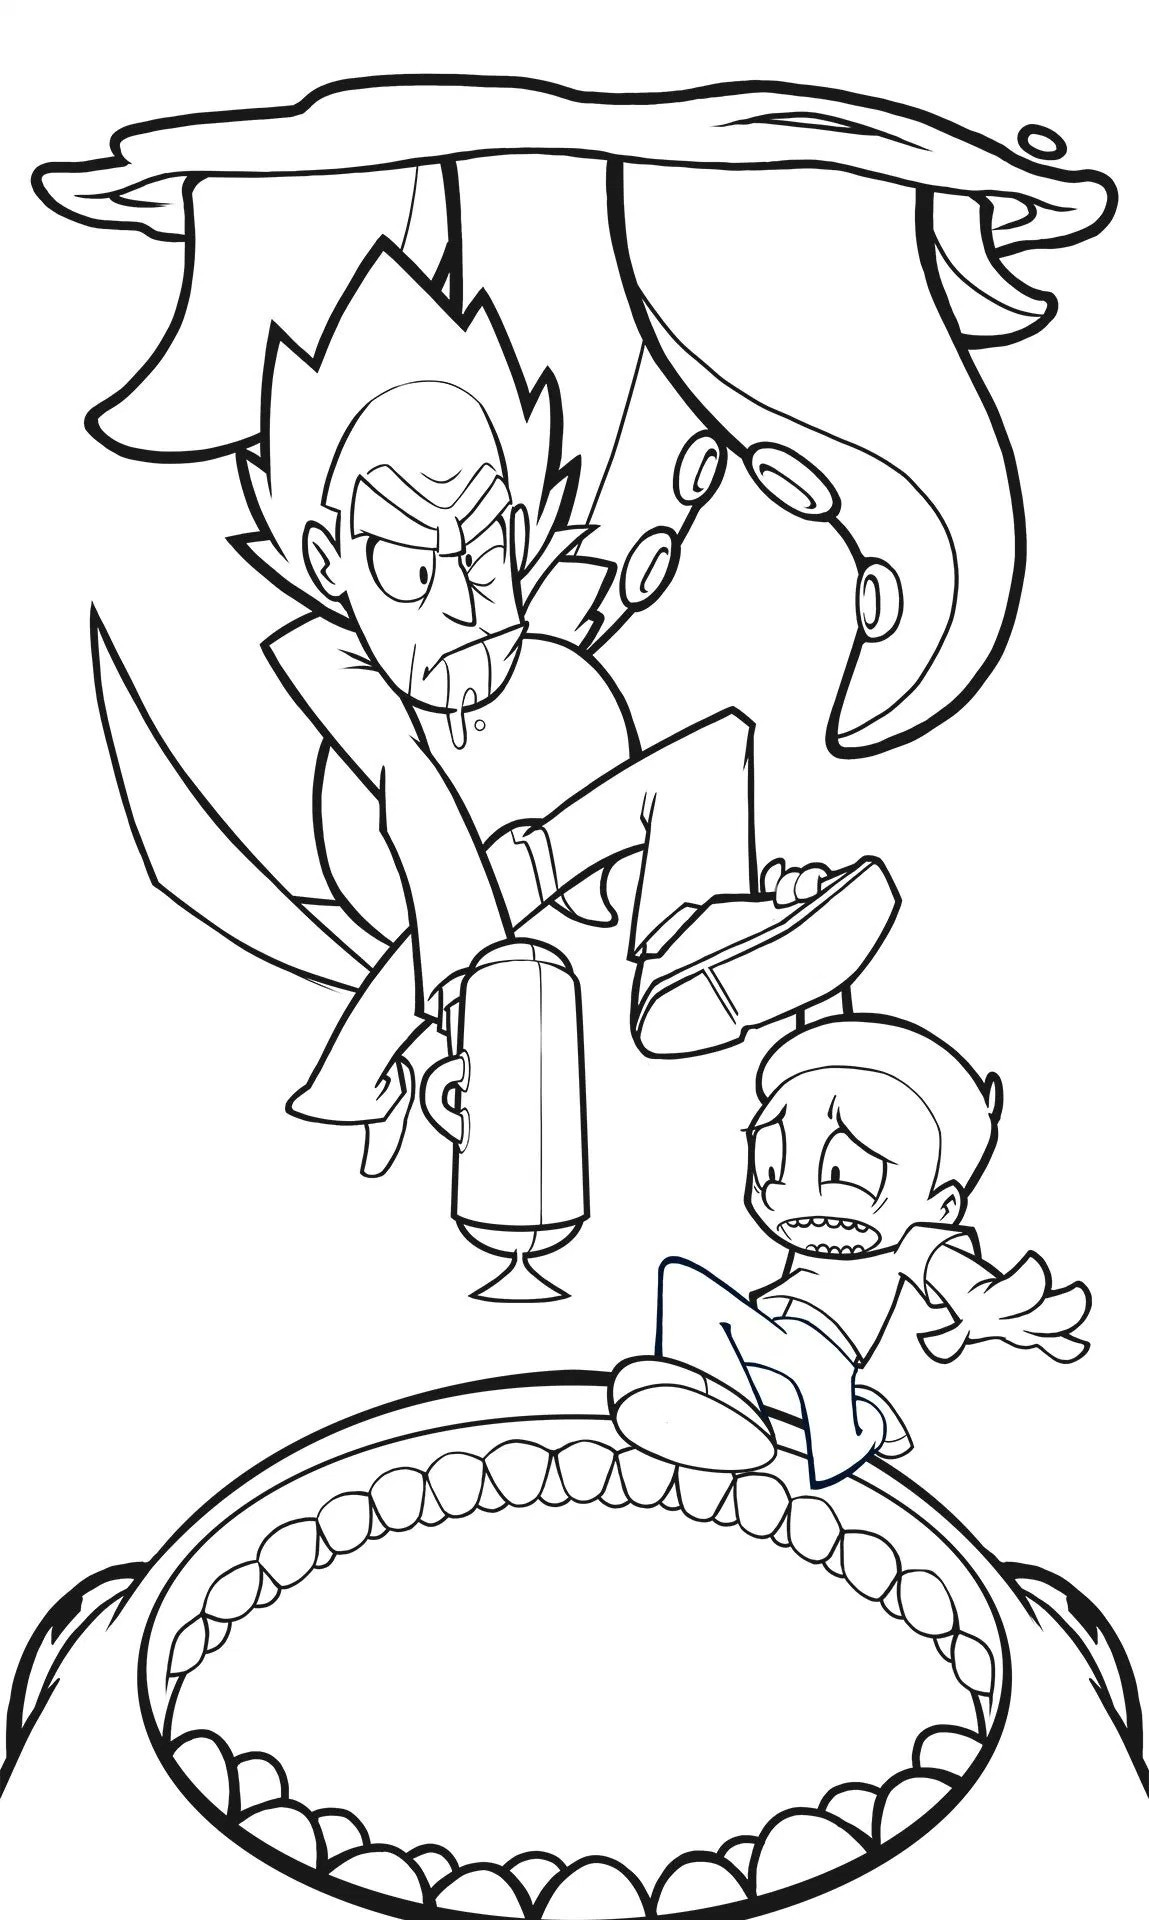 1149x1920 Fresh Coloring Pages Rick Morty Fresh Harvey Lanot Rick